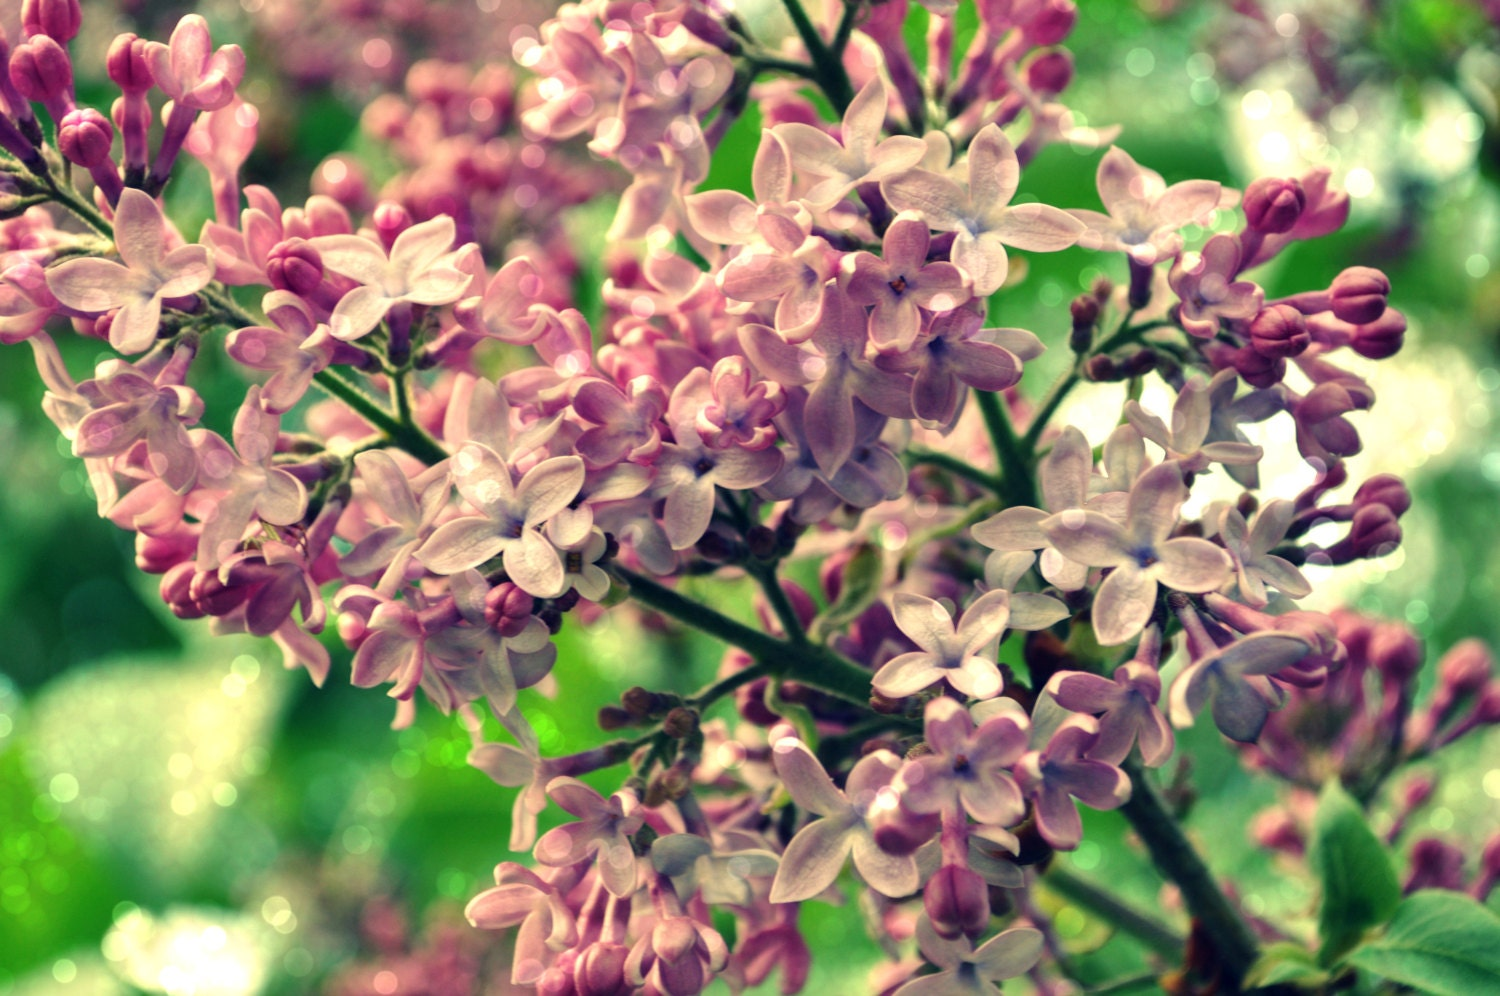 Lilac Daydreams Digital Photography Download Sparkle Floral Fine Art Photo Spring Flowers Pink - regiftstore